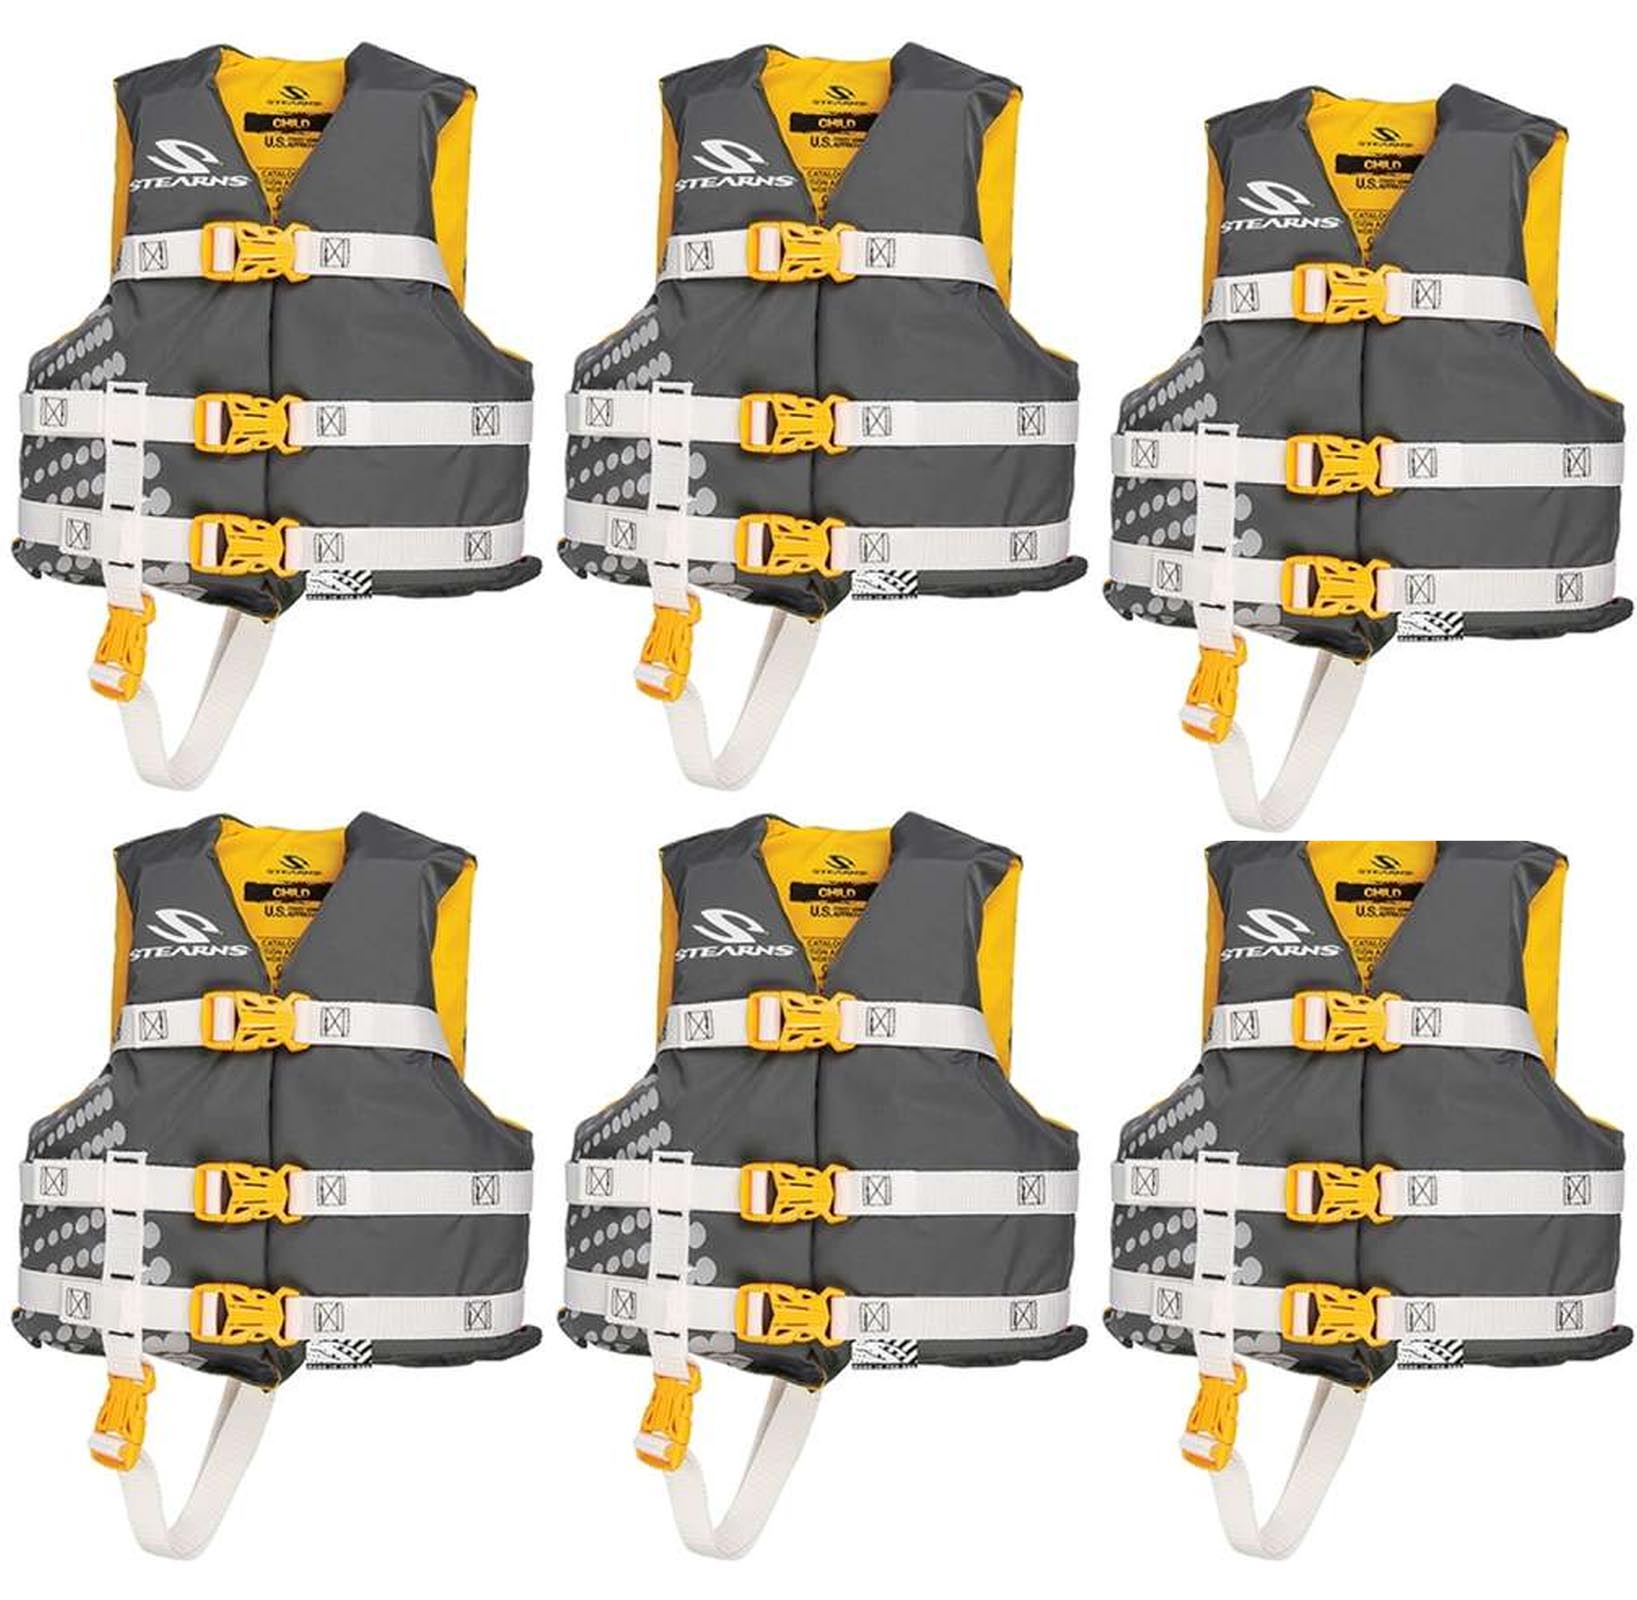 (6) COLEMAN Stearns Classic Series Kids Life Jacket Flotation Vests 30-50Lbs by COLEMAN